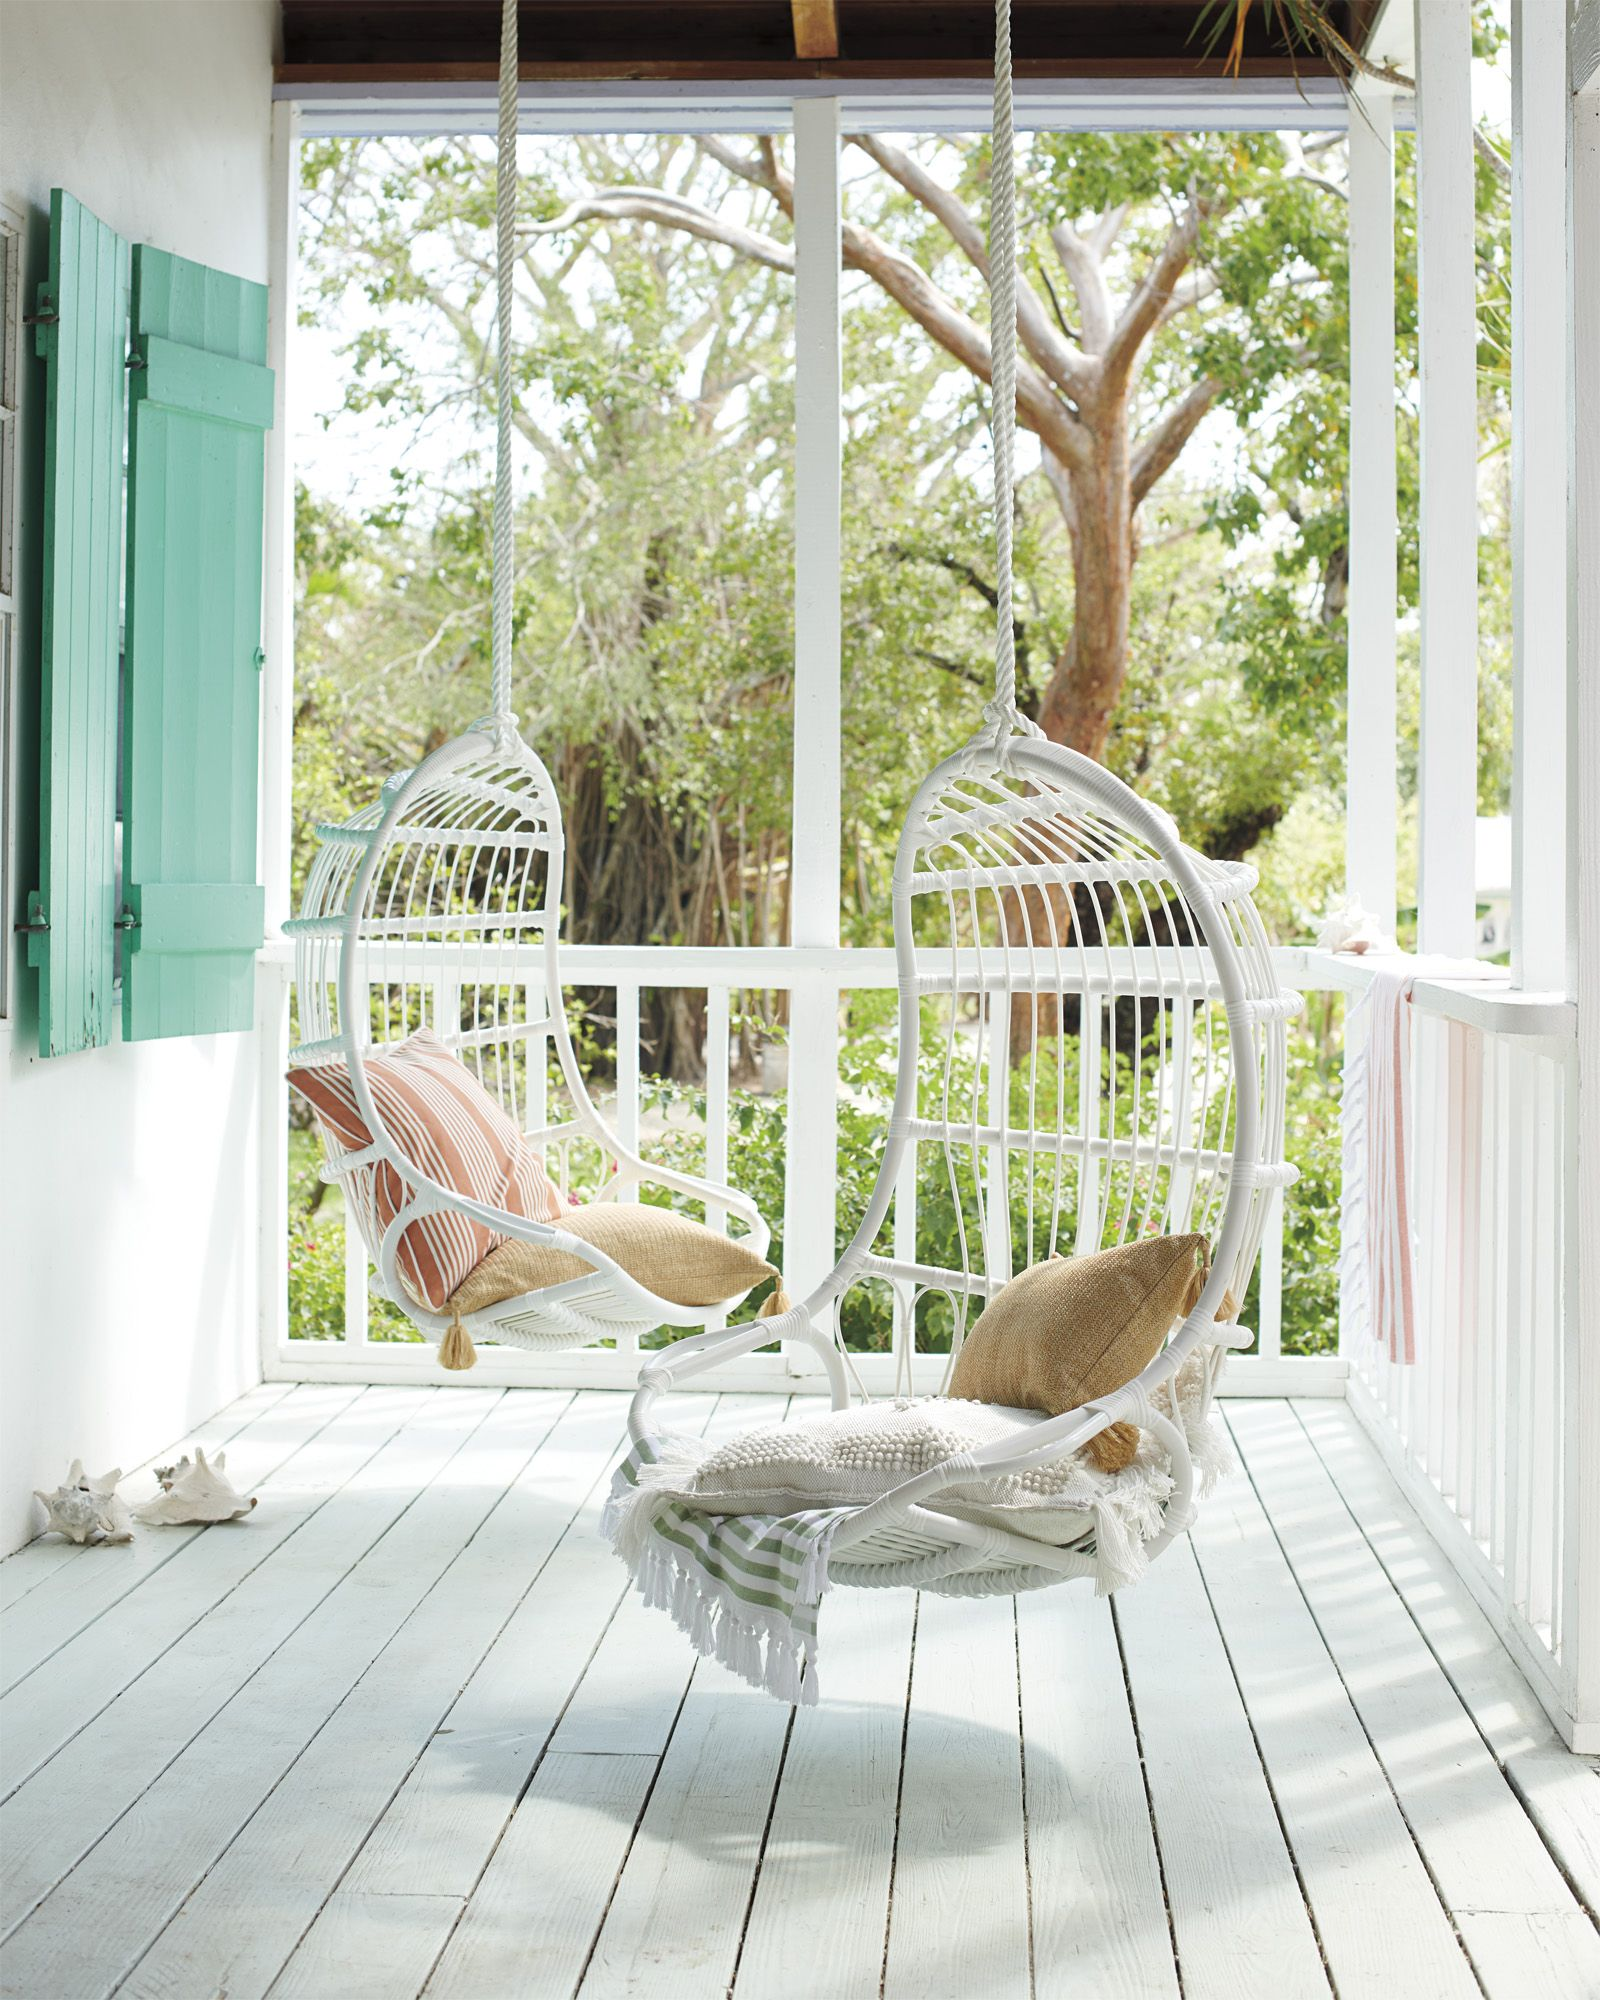 Hanging Outdoor Chairs Outdoor Hanging Chair In 2019 Patio Furniture Porch Decor